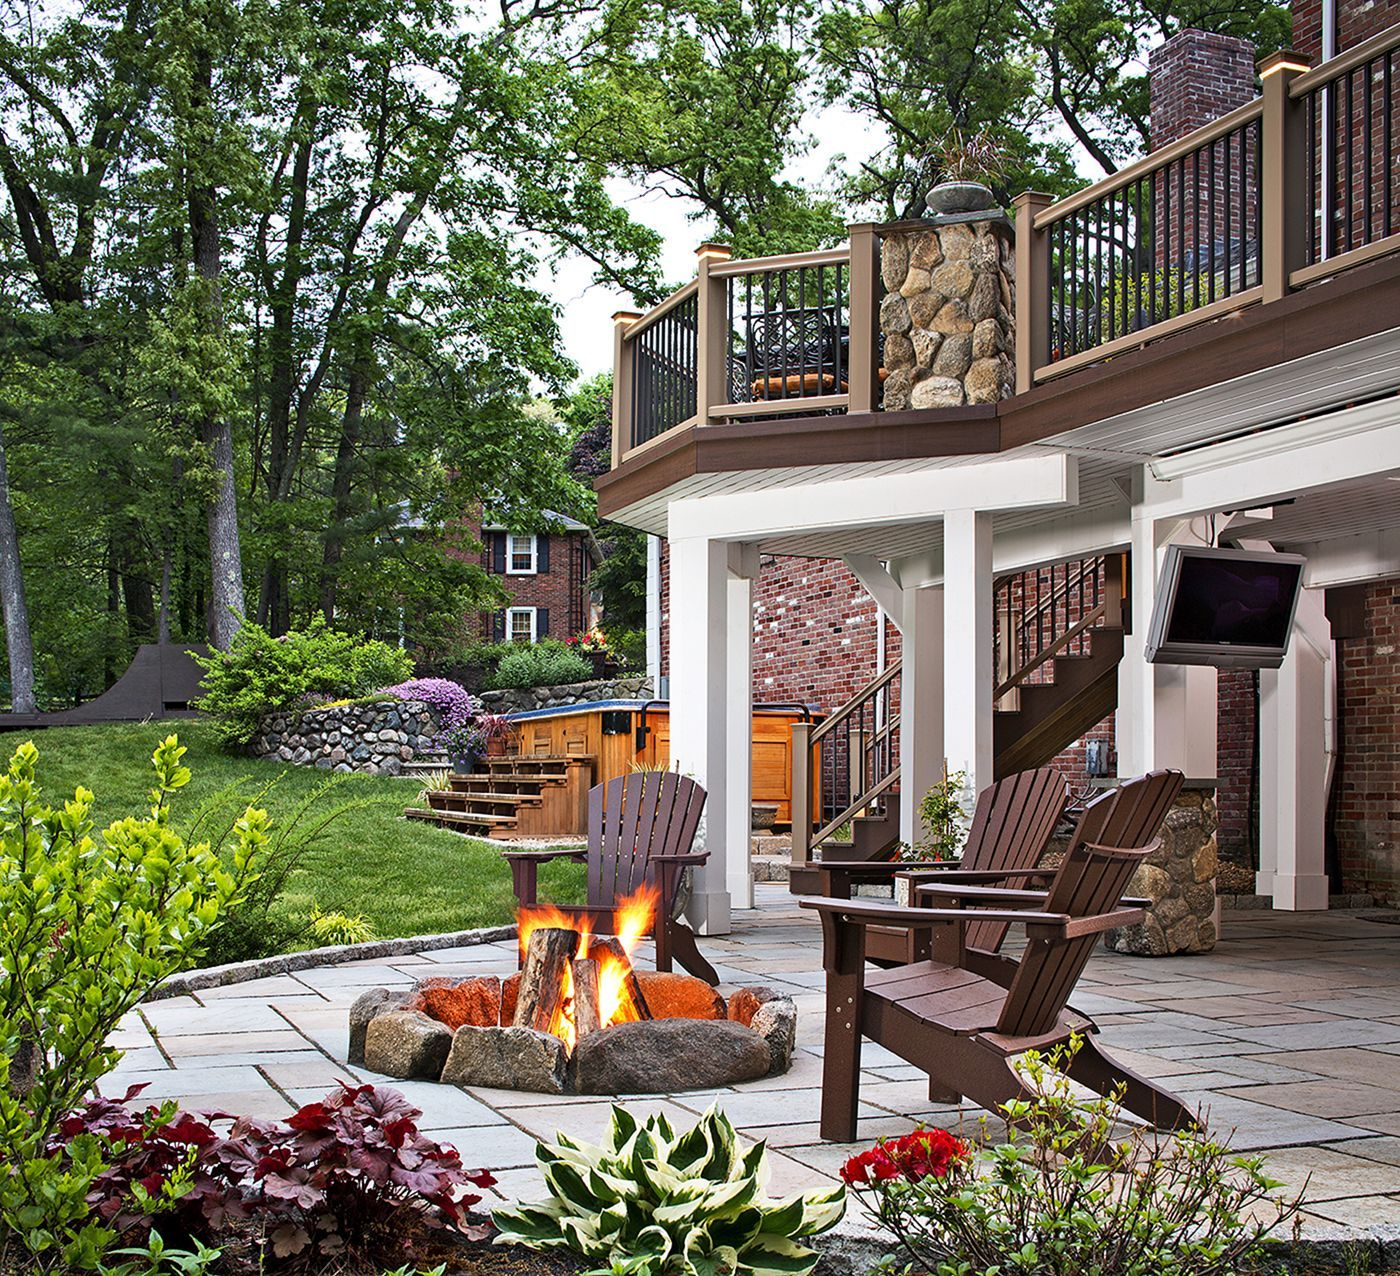 15+ Awesome Simple Patio Decorating Ideas On a Budget ... on Covered Patio Ideas On A Budget id=45158